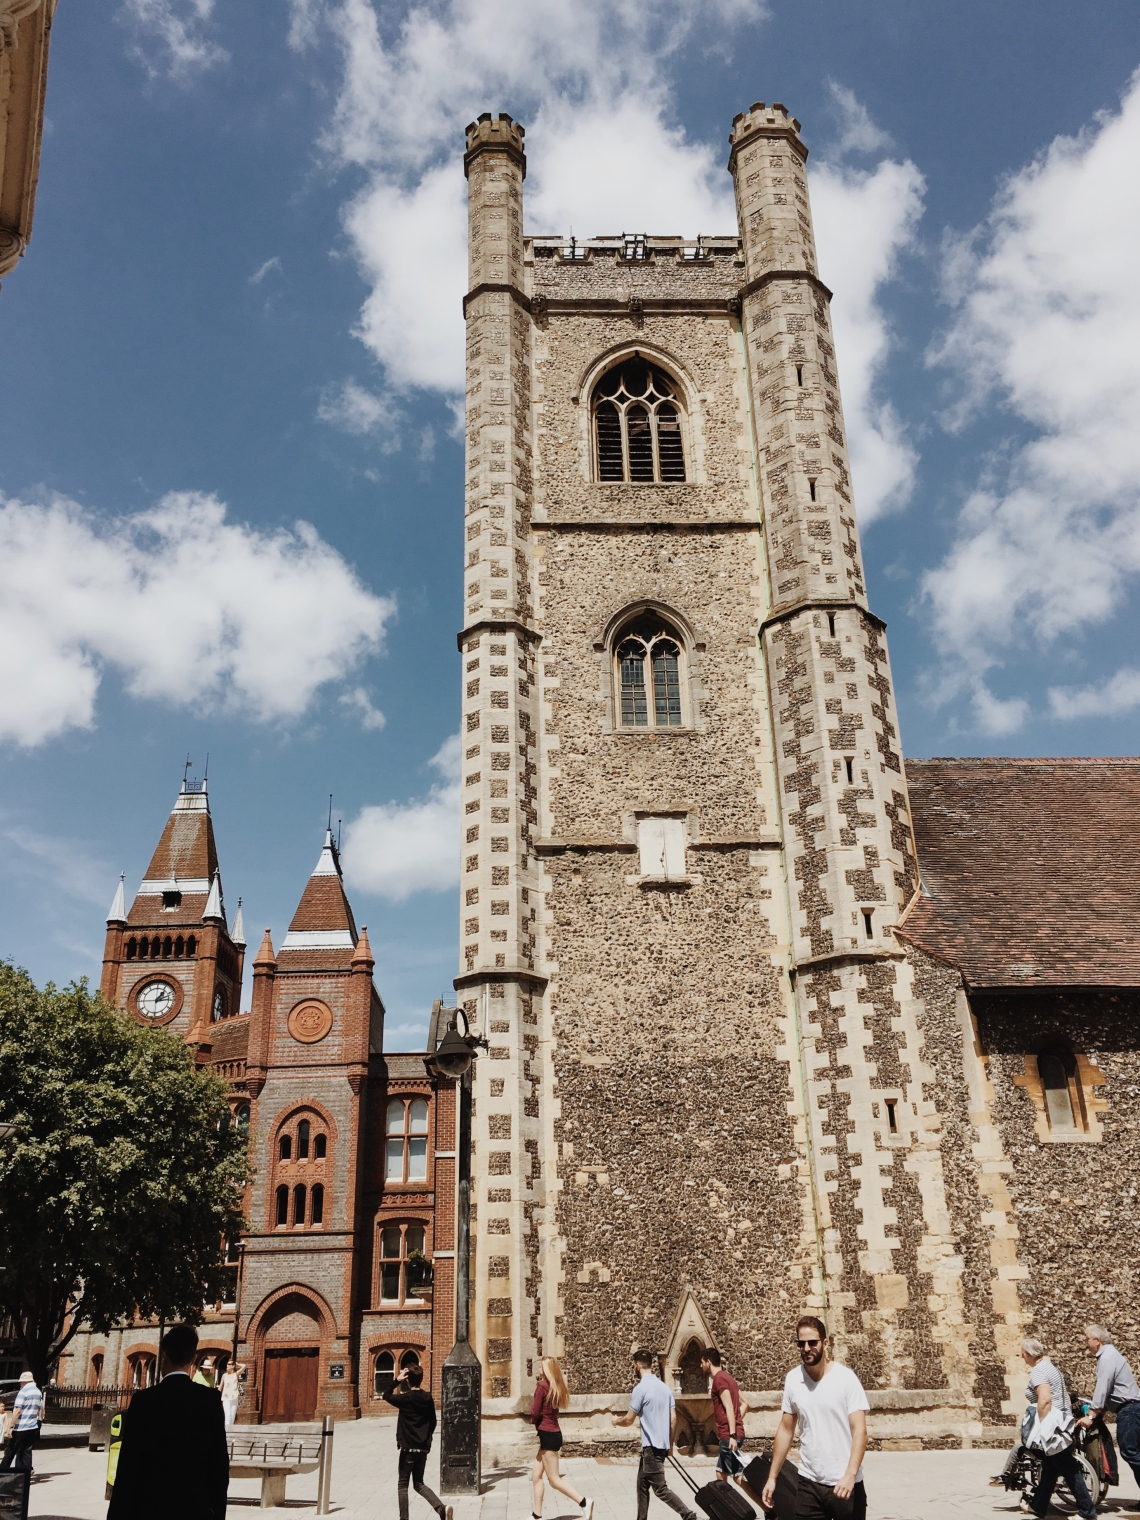 Saint Laurence Church, Reading UK